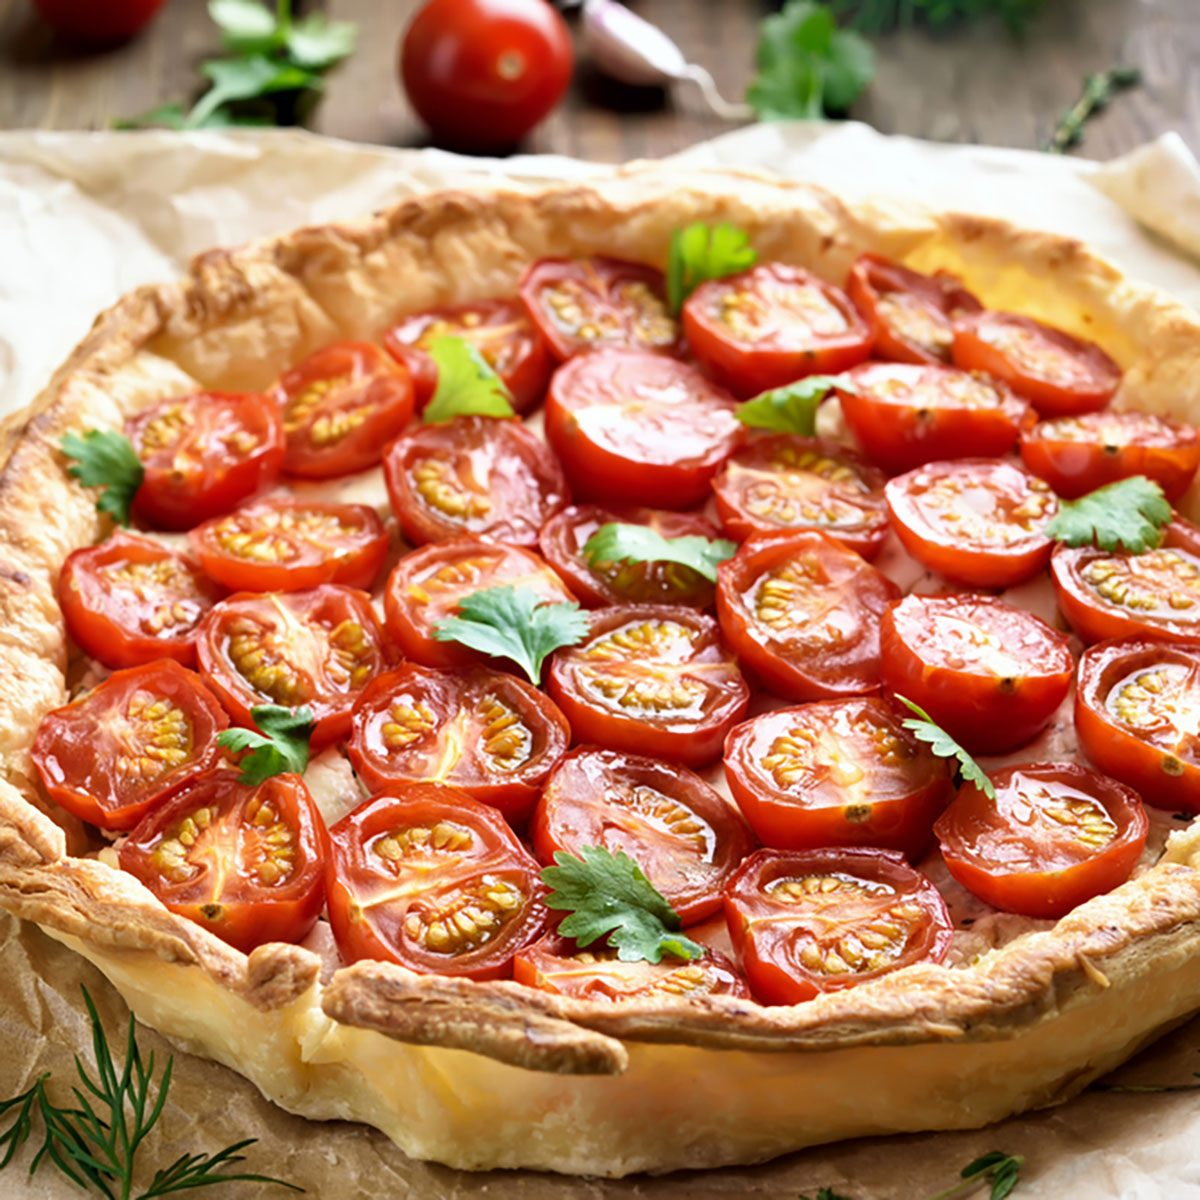 Tomato pie on baking paper, close up view